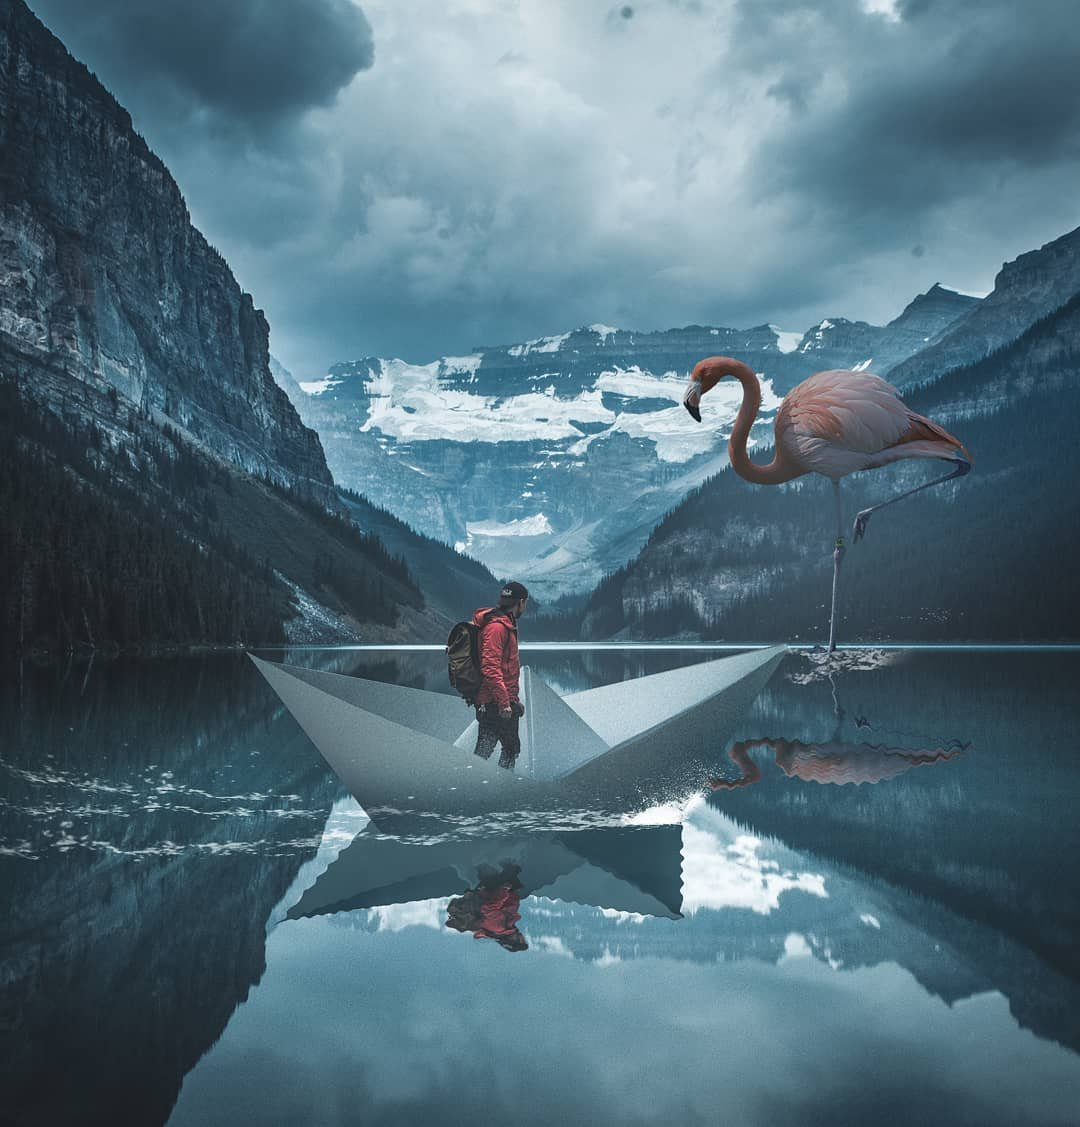 Innovative-Surreal-Photo-Manipulations